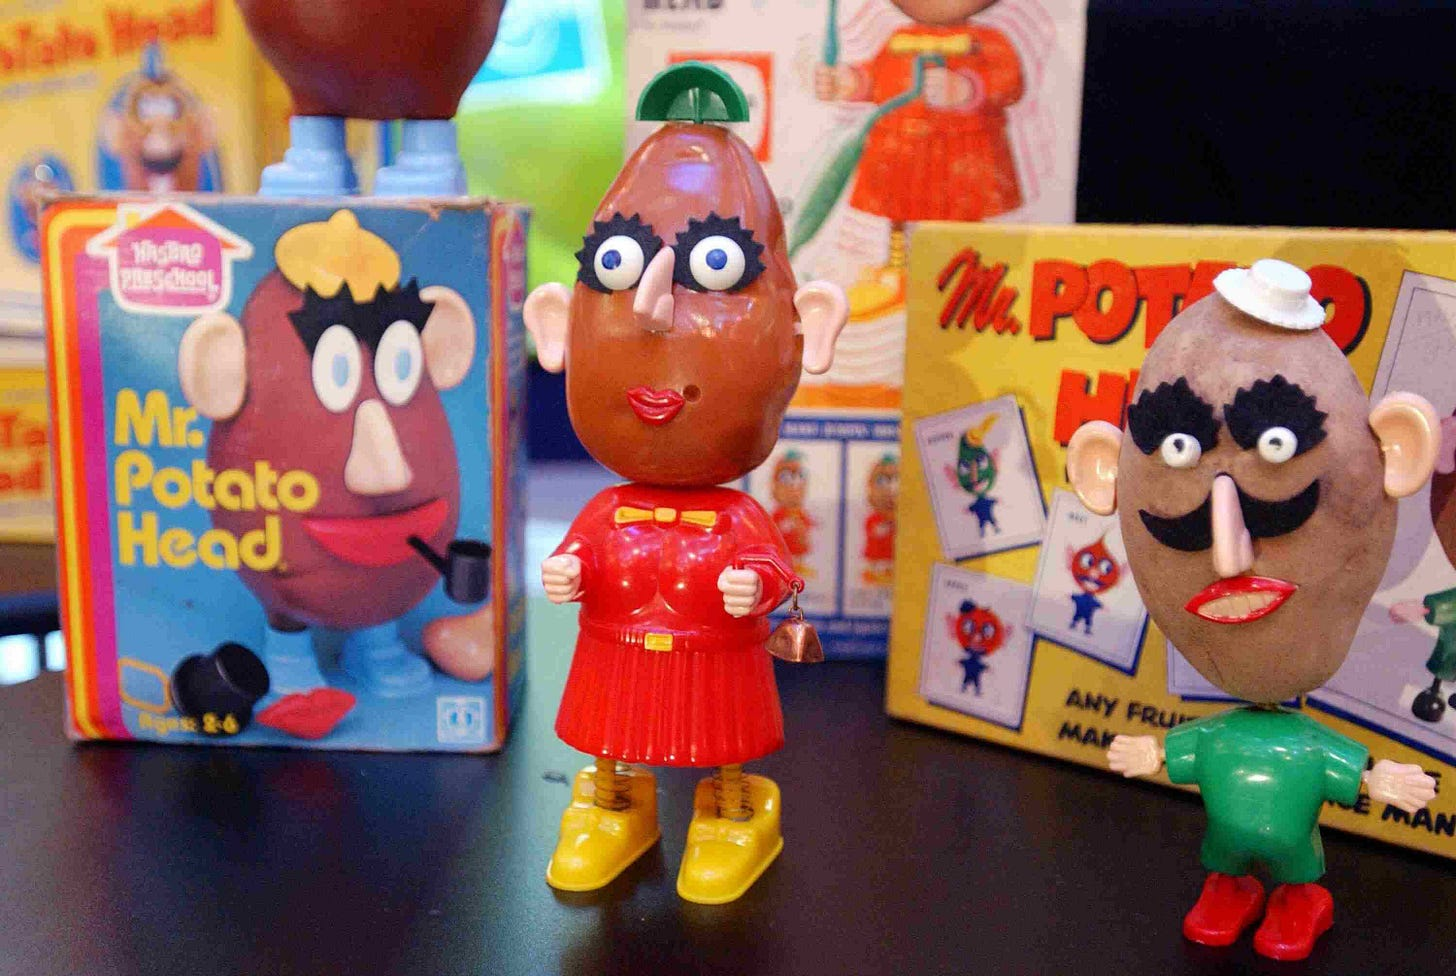 Old Mr. and Mrs. Potato Head